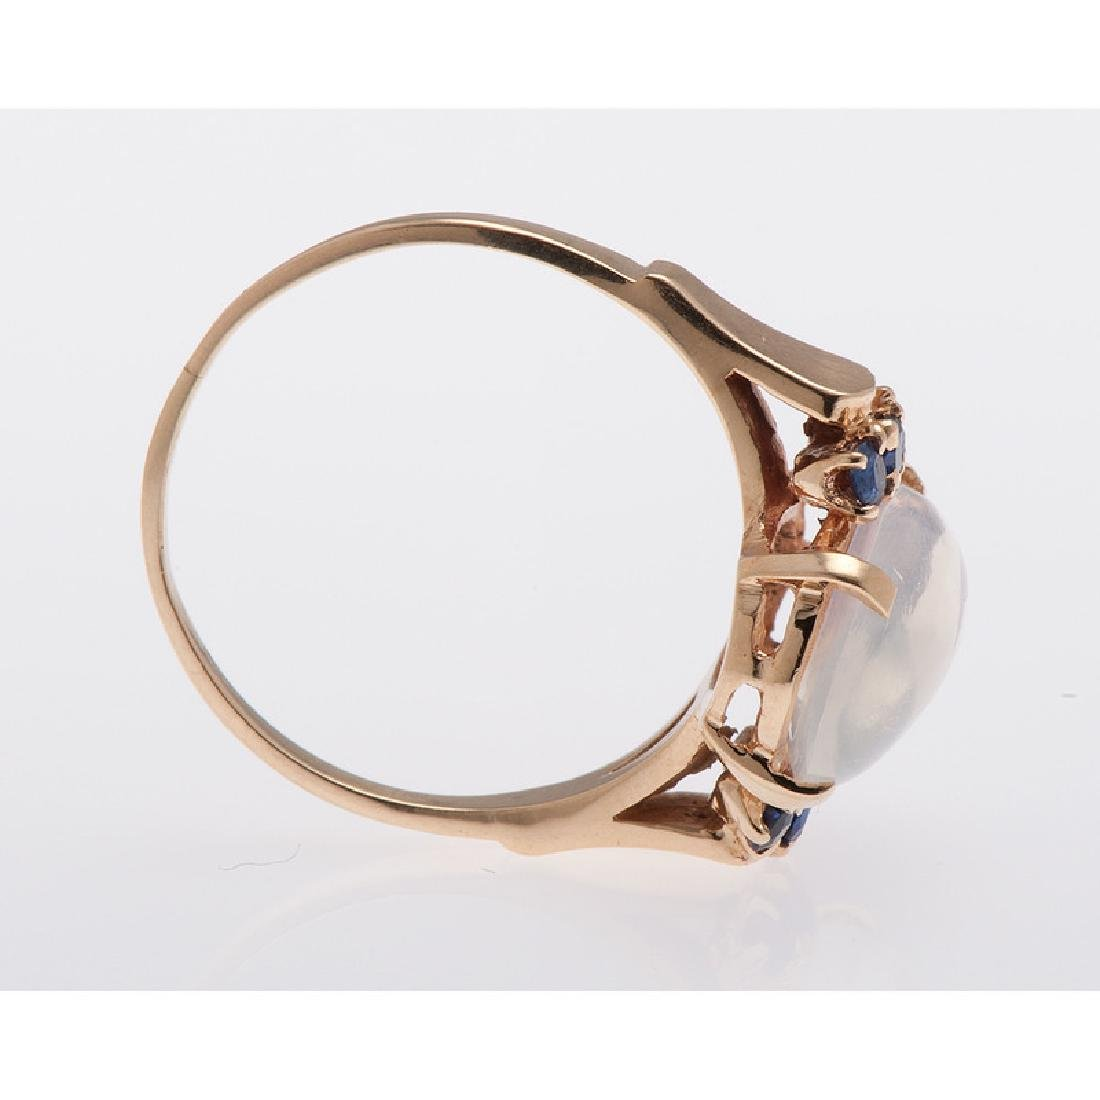 14 Karat Yellow Gold Moonstone and Sapphire Ring - 3